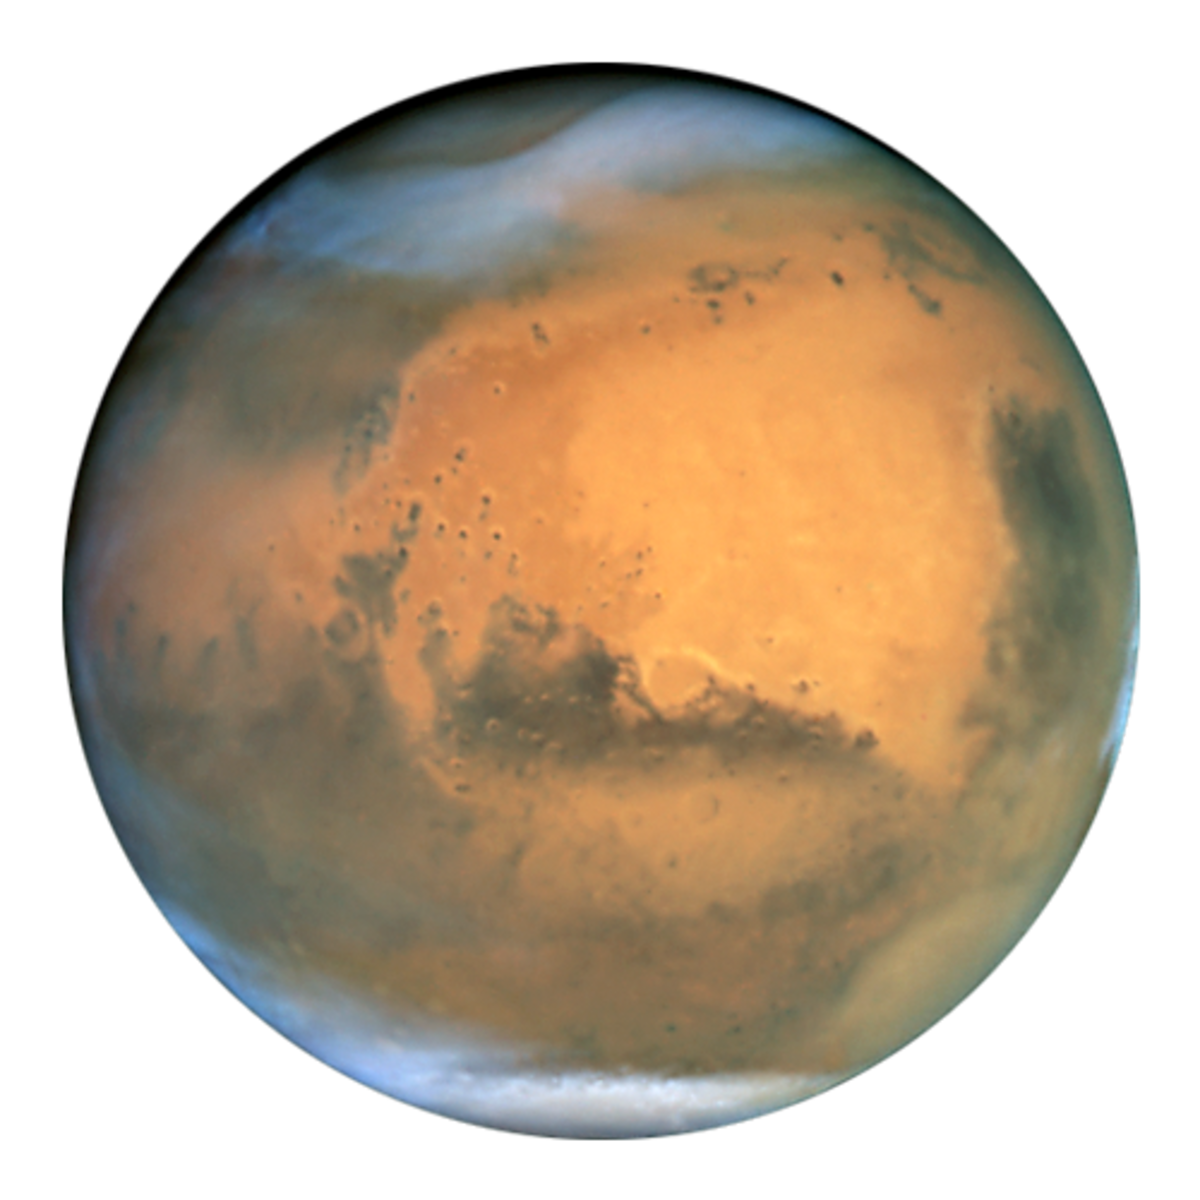 How to Walk on Mars With Google Street View on Your Cell Phone